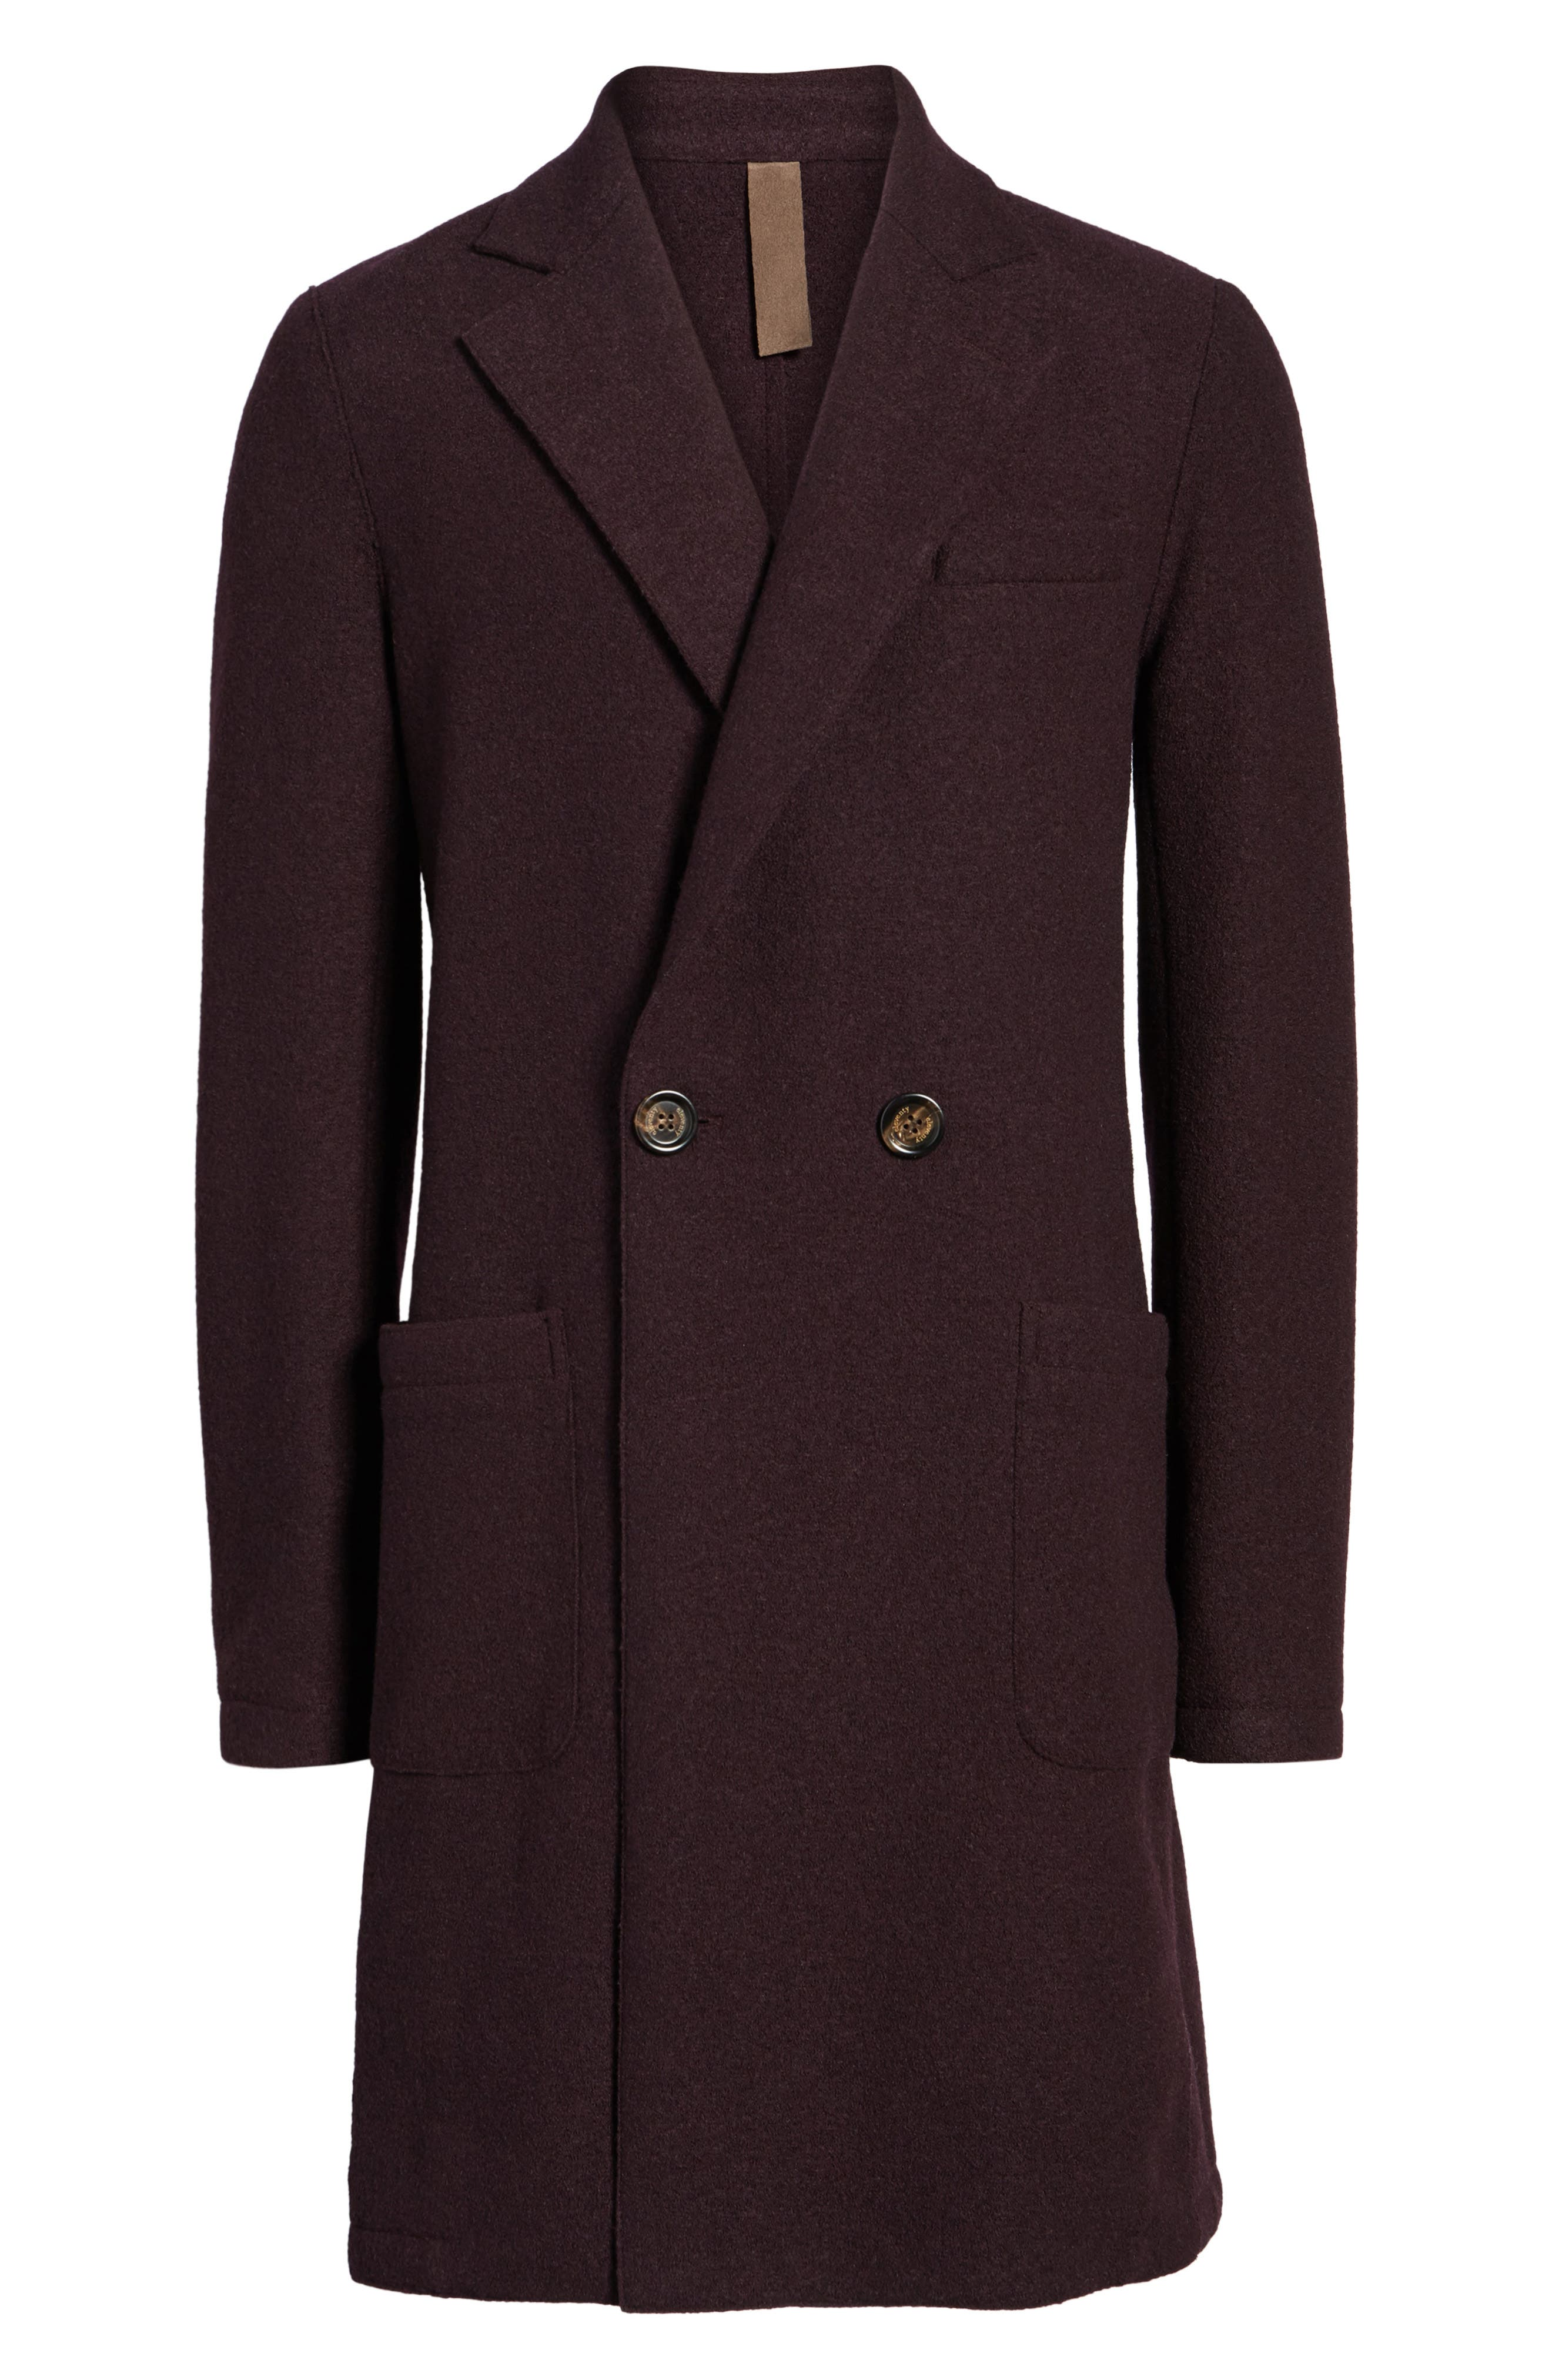 Boiled Wool Double Breasted Topcoat,                             Alternate thumbnail 5, color,                             930